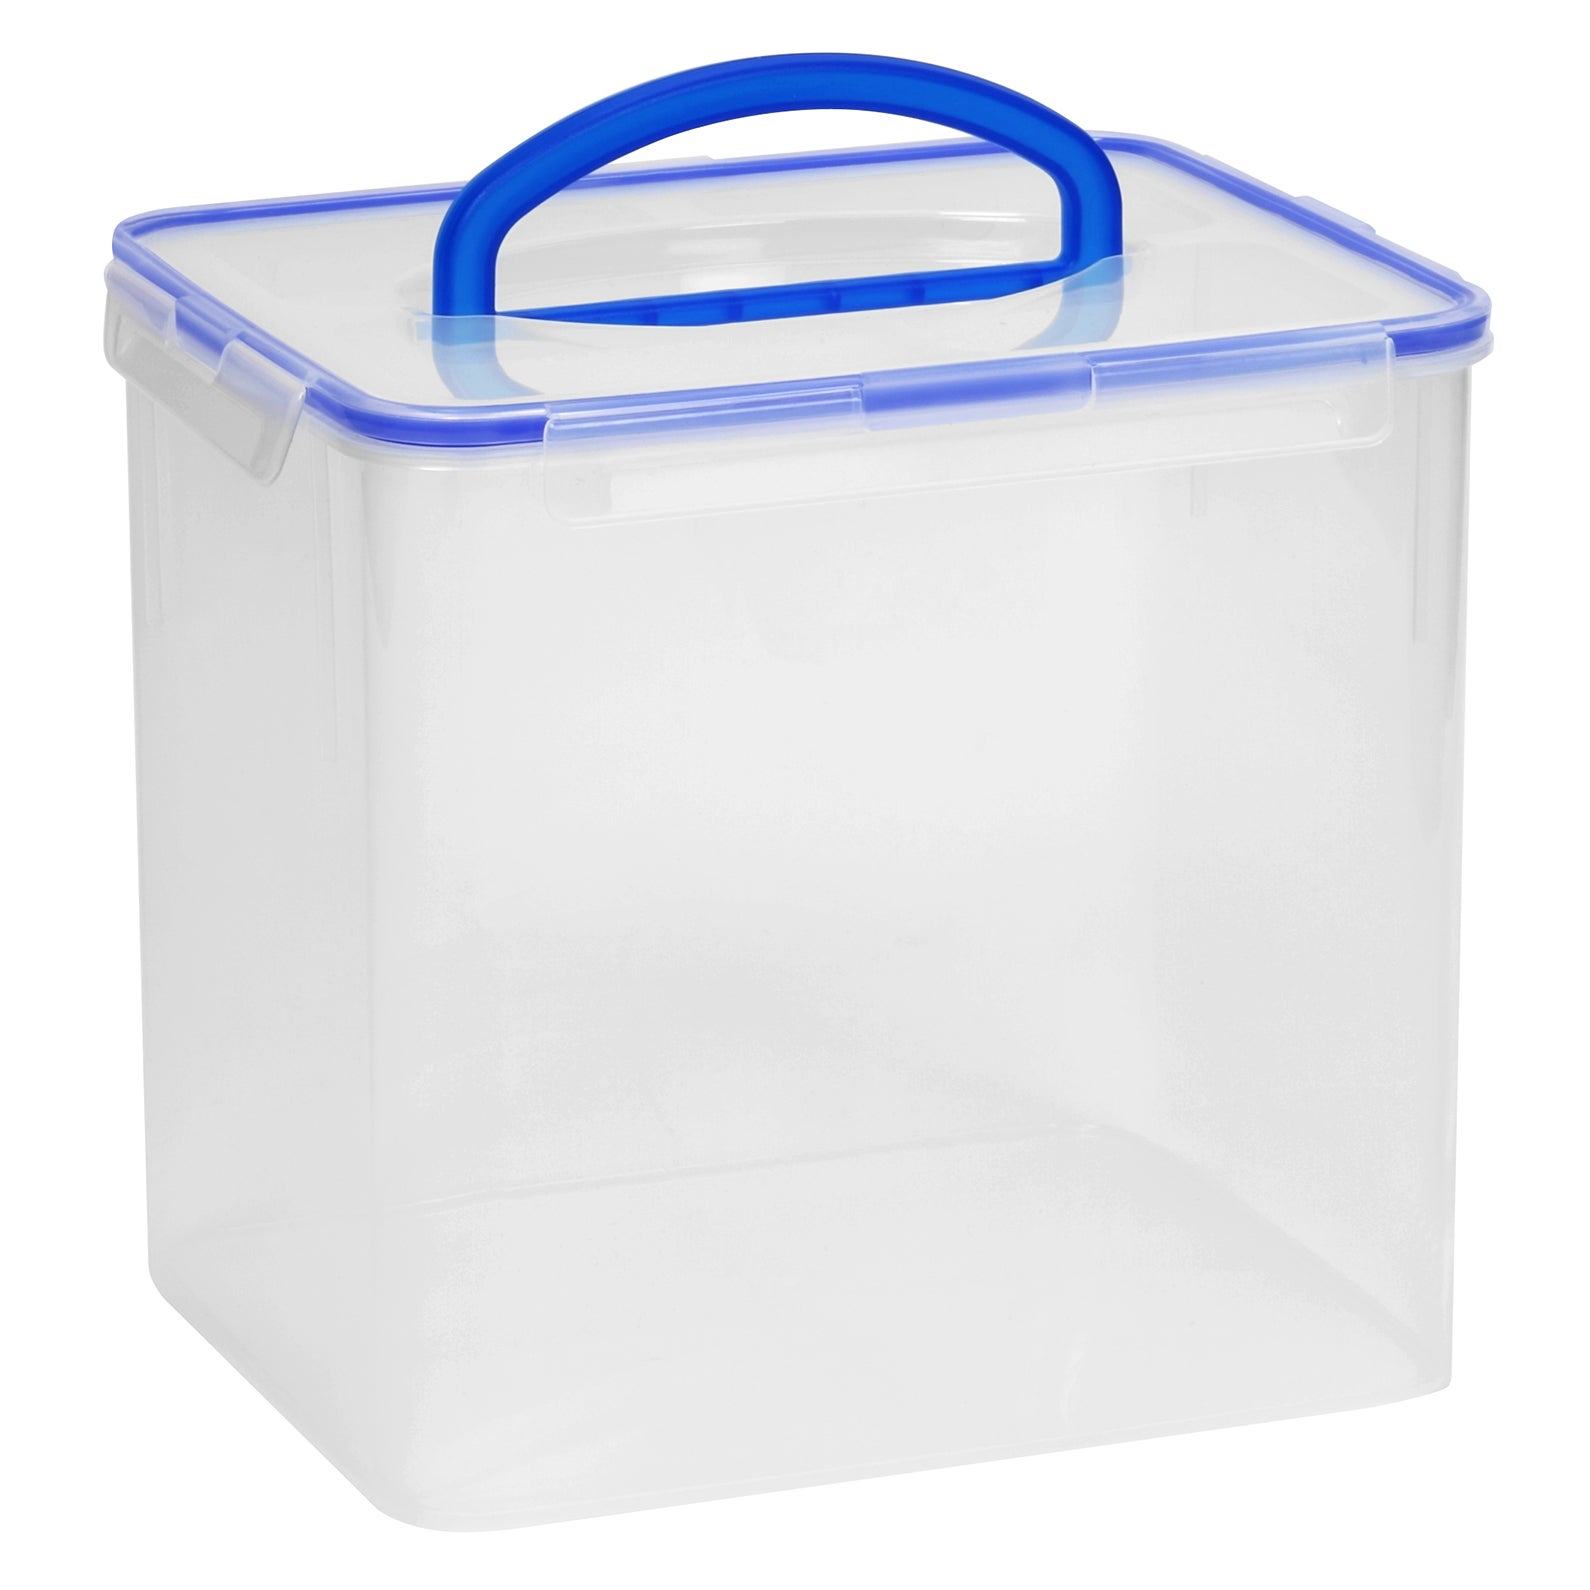 Shop Snapware 1098437 40 Cup Clear Airtight Food Storage Container With Handle - Free Shipping On Orders Over $45 - Overstock.com - 12557666  sc 1 st  Overstock.com & Shop Snapware 1098437 40 Cup Clear Airtight Food Storage Container ...